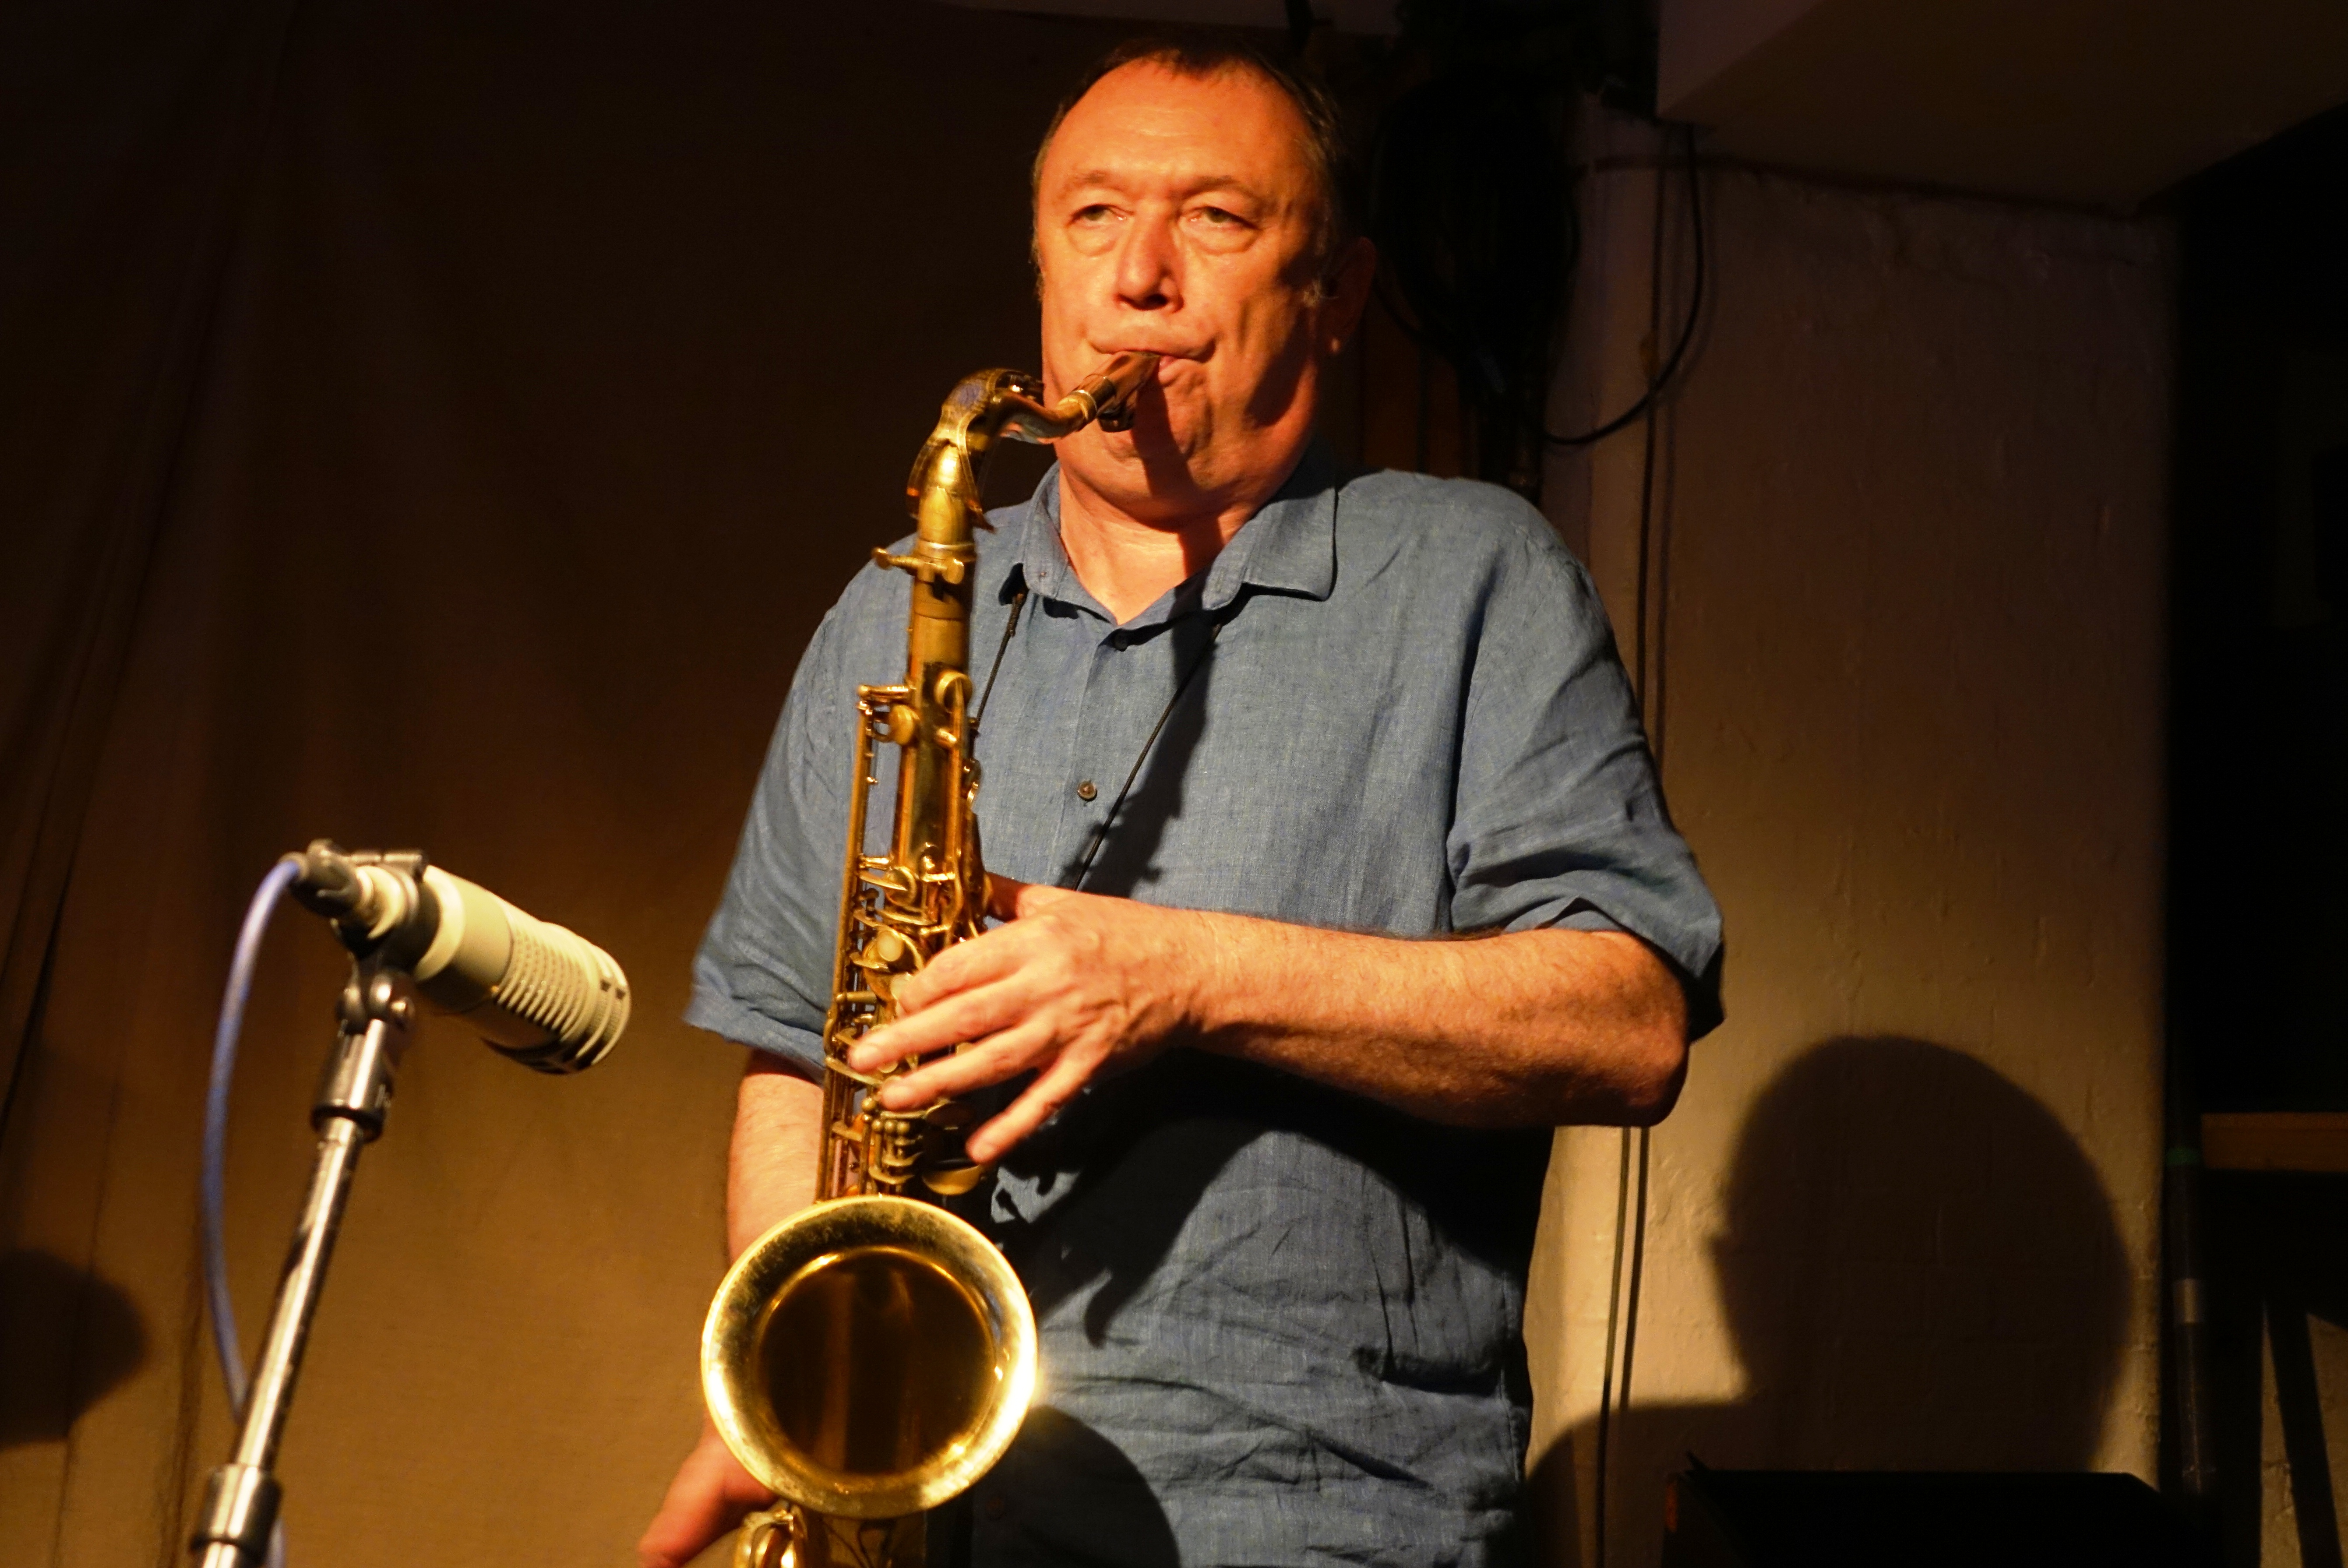 John Butcher at Cafe Oto, London in August 2018